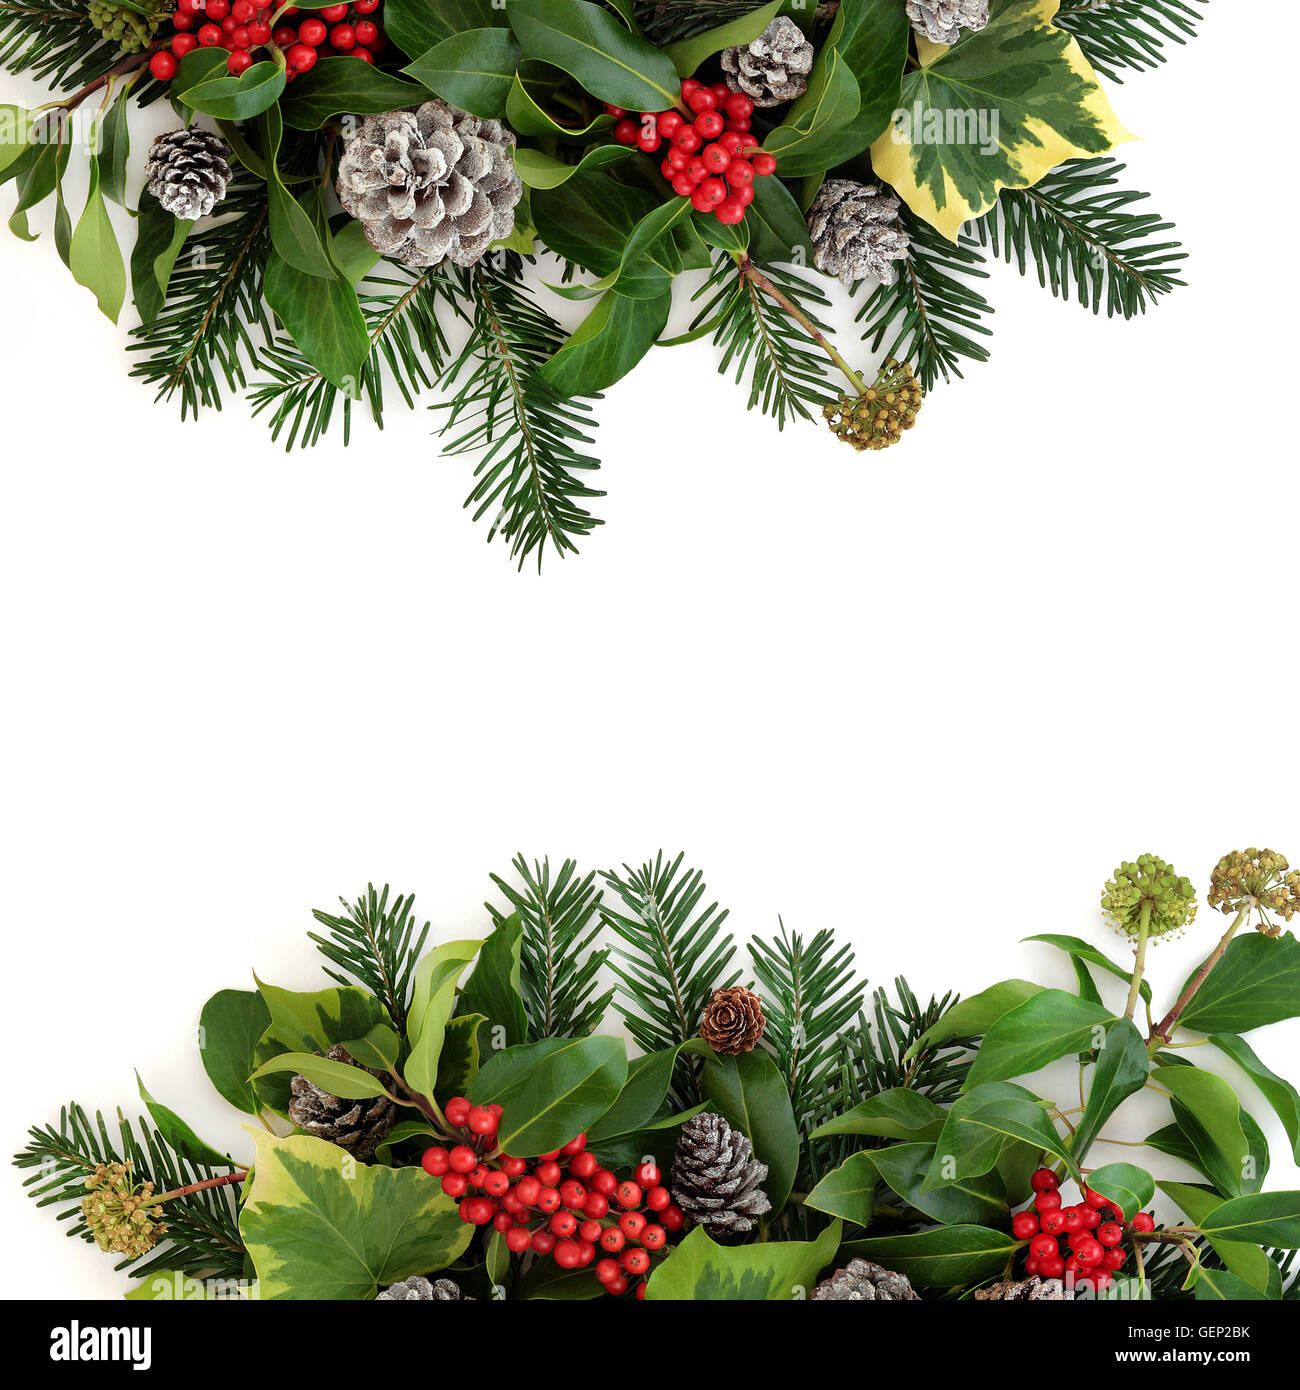 Why is holly a traditional christmas decoration - Stock Photo Traditional Winter Floral Border With Holly And Red Berries Ivy Snow Covered Pine Cones And Fir Over White Background